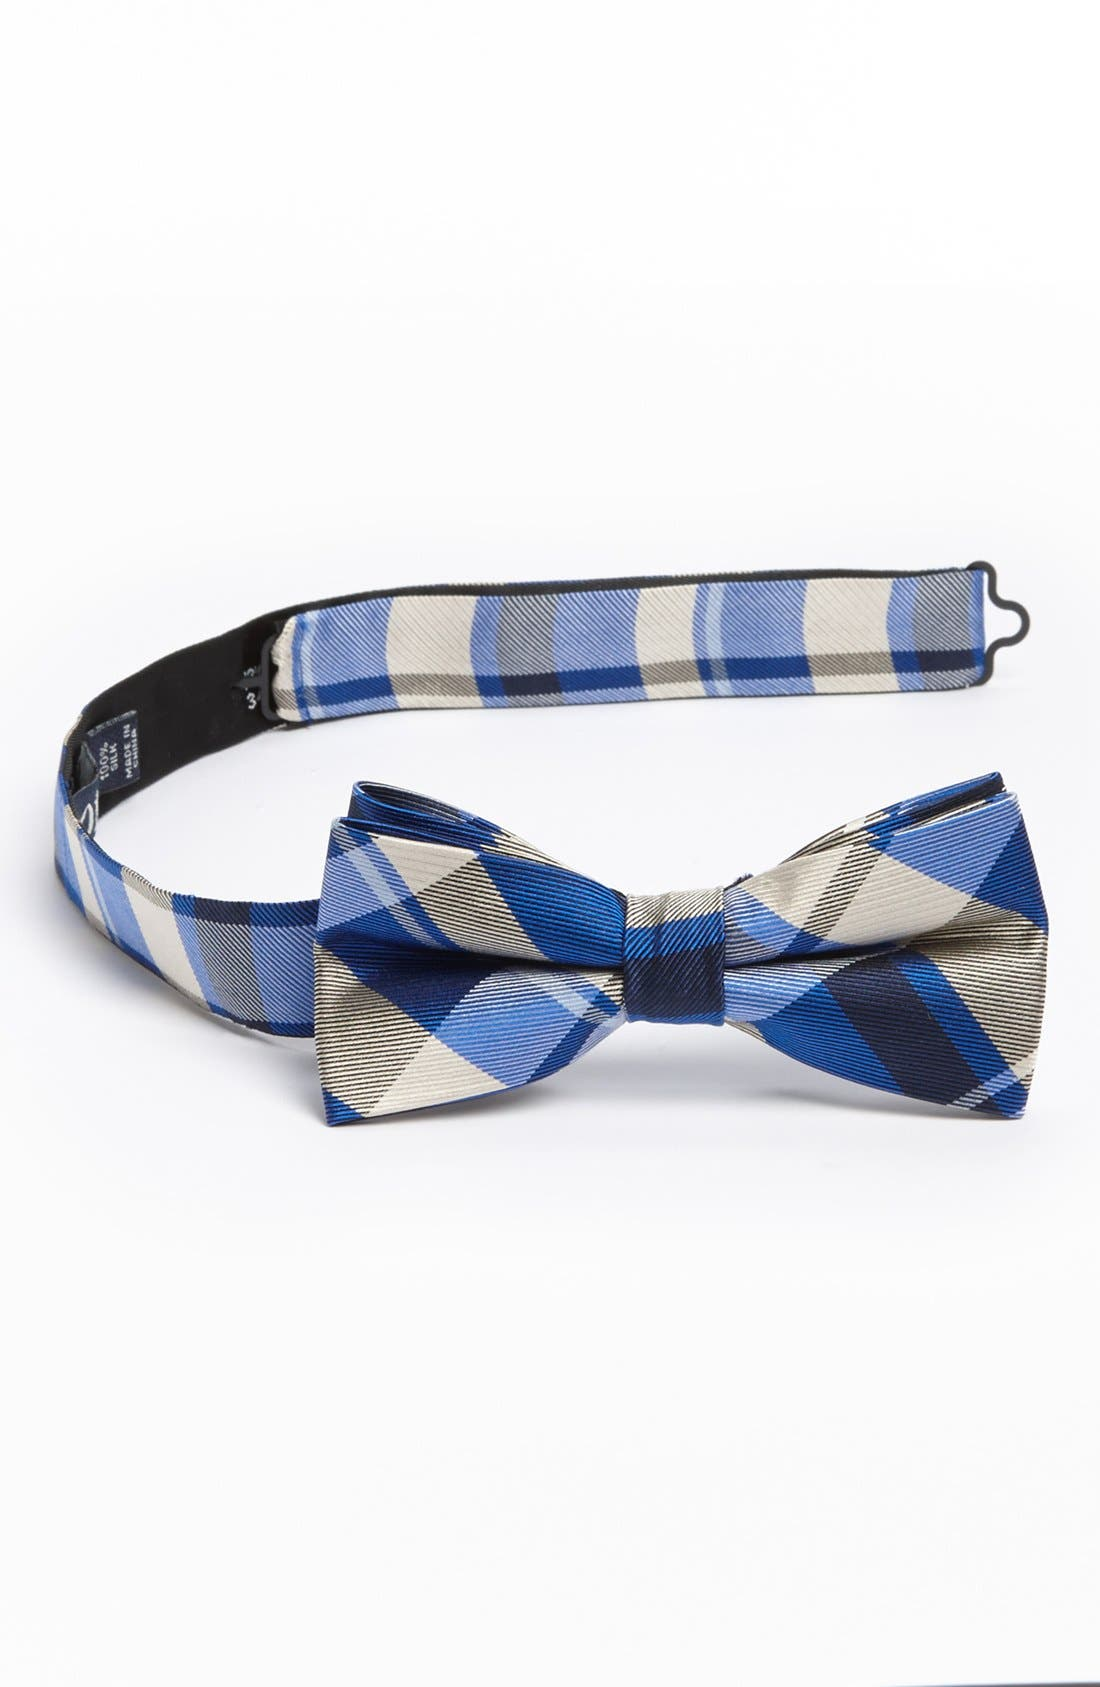 Main Image - 1901 Woven Silk Bow Tie